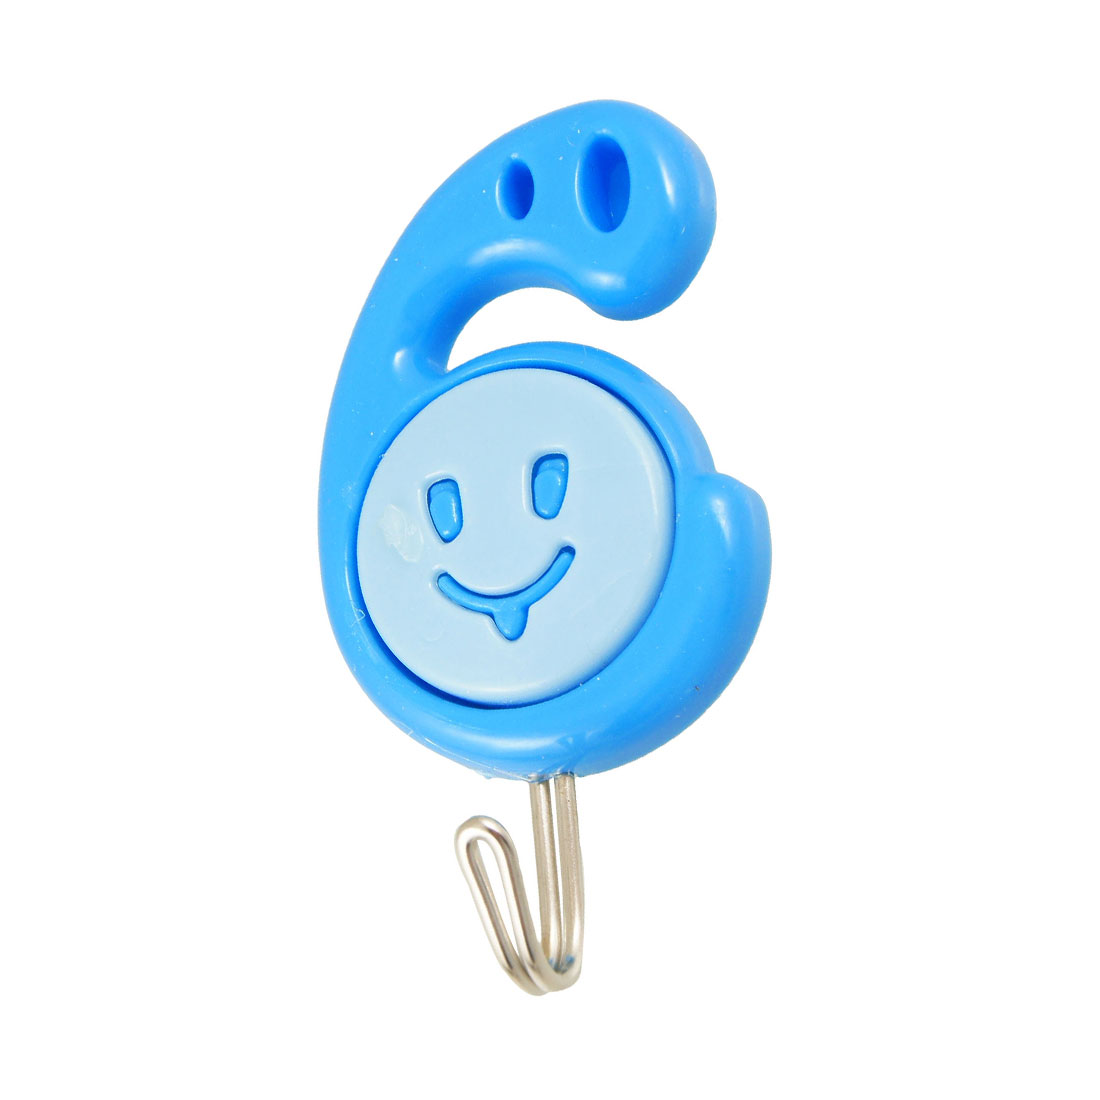 3 Pcs Blue 6 Shaped Base Smiling Bathroom Adhesive Bag Towel Wall Hanger Holder